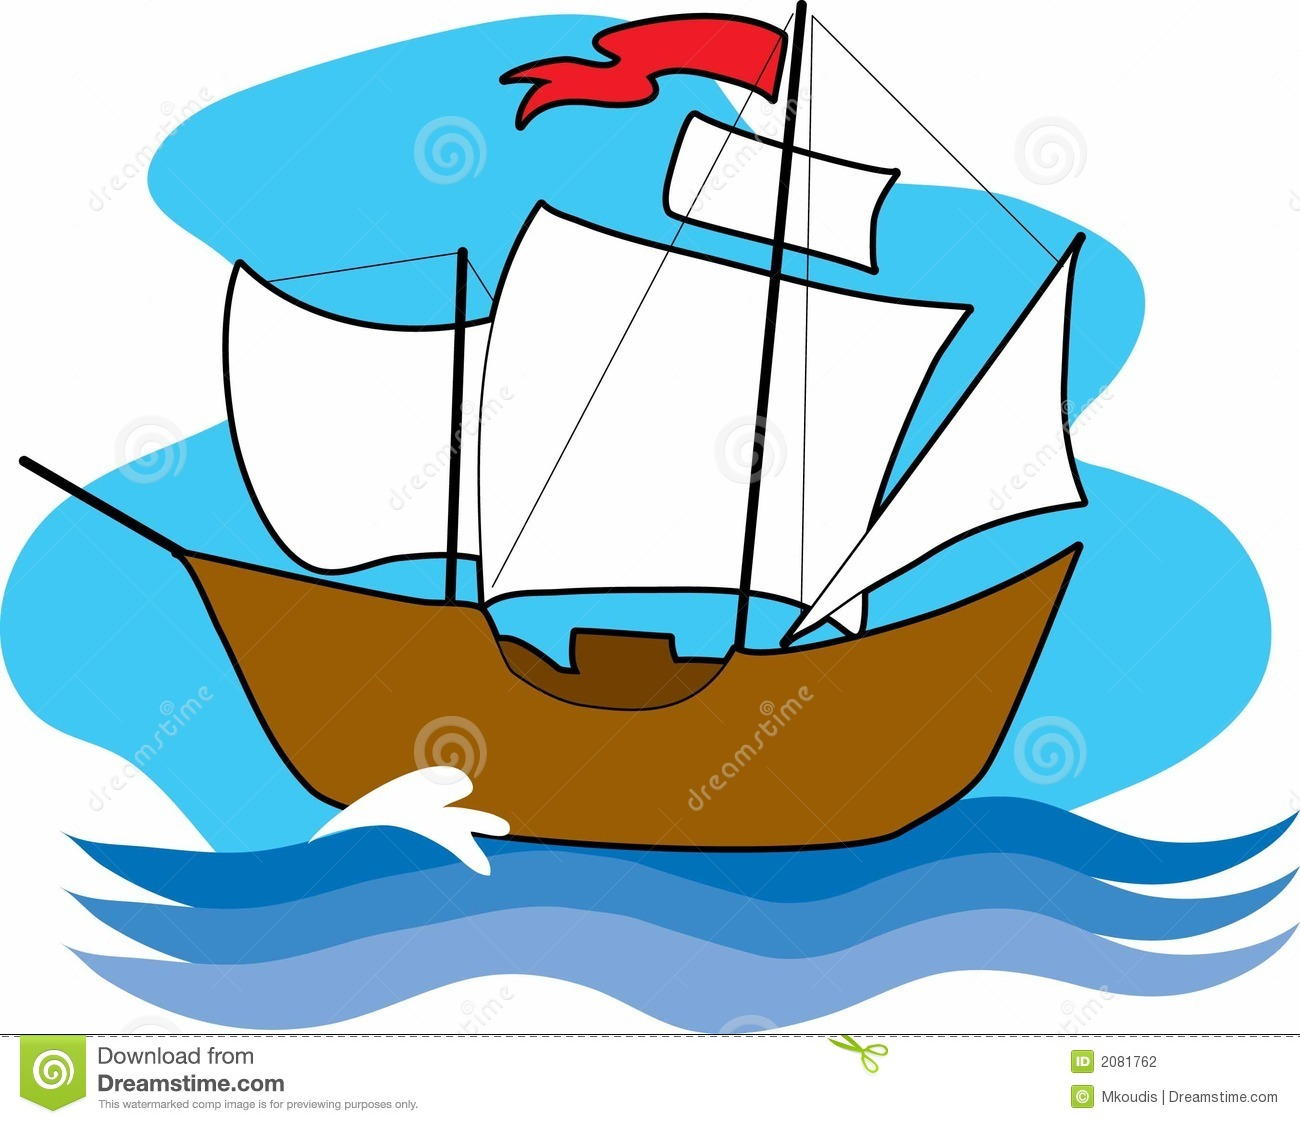 shipwreck clipart at getdrawings com free for personal use rh getdrawings com shipwrecked clip art shipwrecked vbs clipart